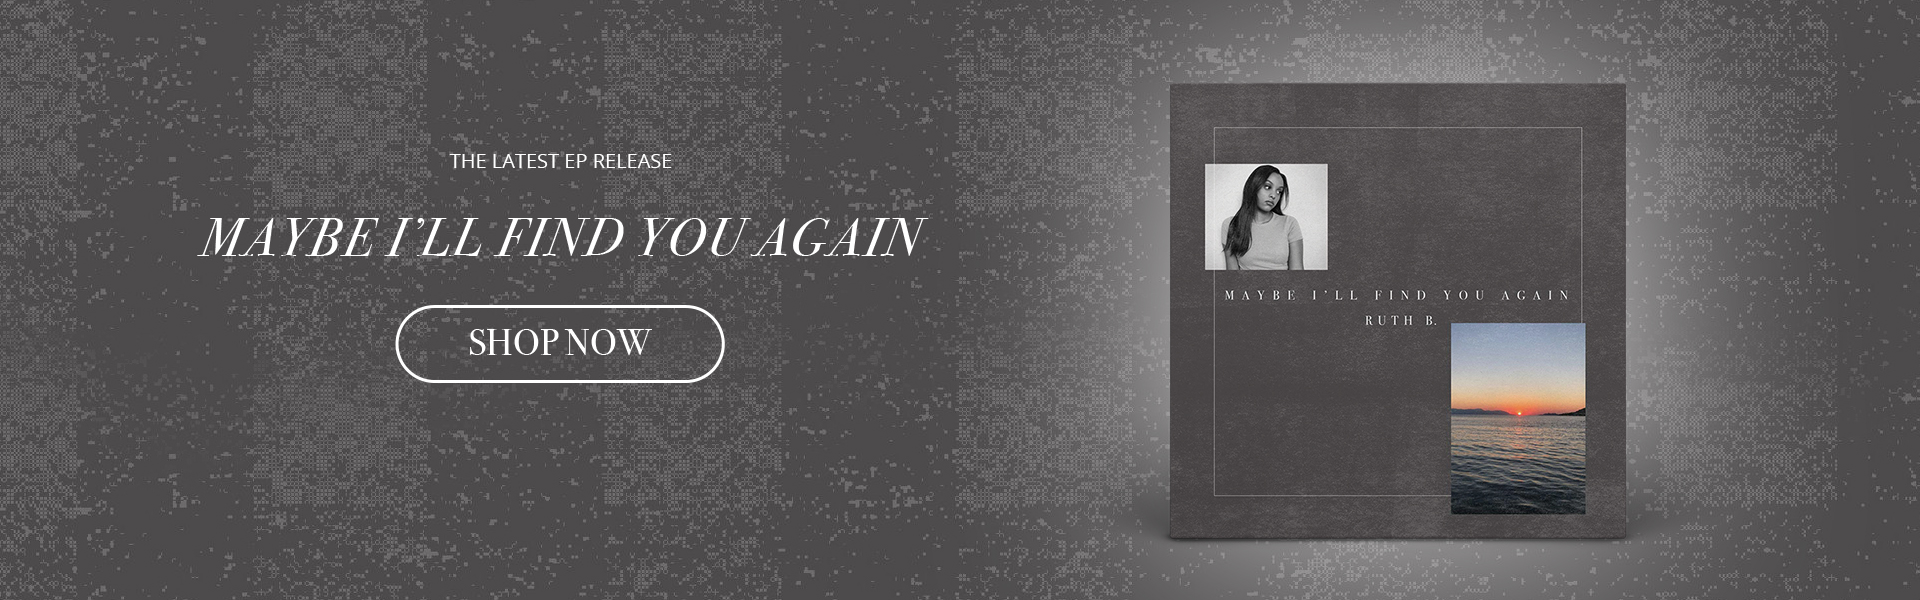 Ruth B. | Maybe I'll Find You Again | Order Now